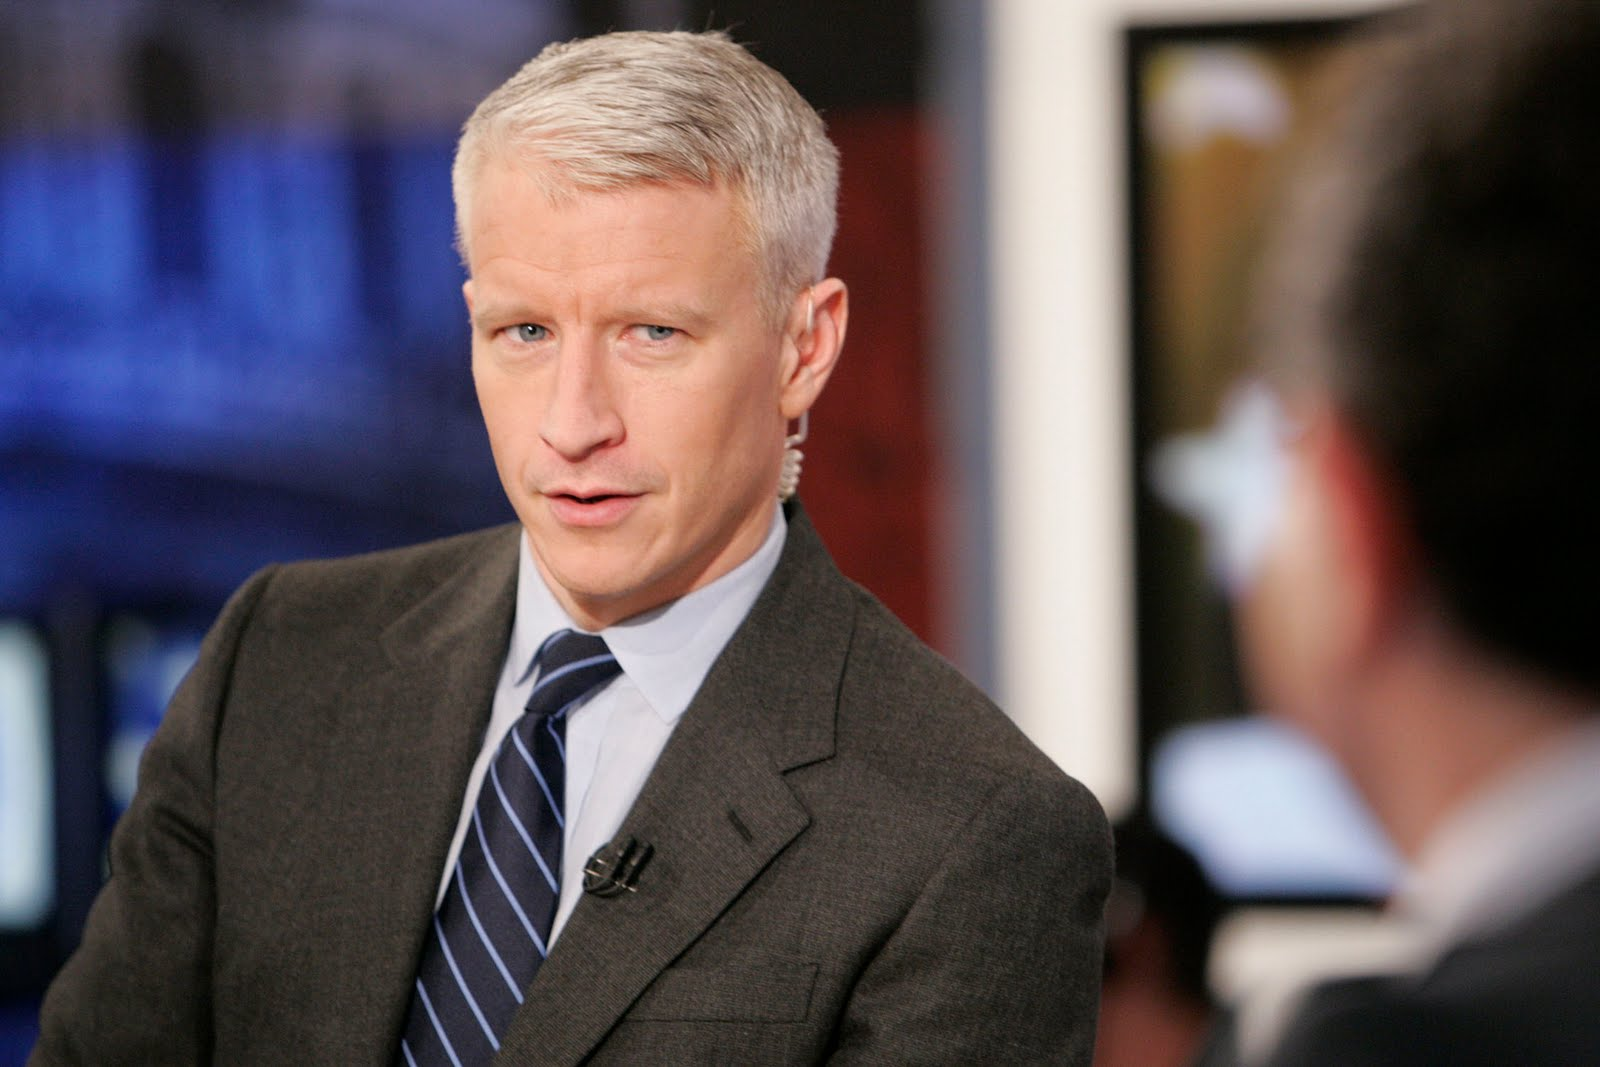 anderson cooper coming out essay Cooper's coming out got more attention, but ocean's heralds more social change.